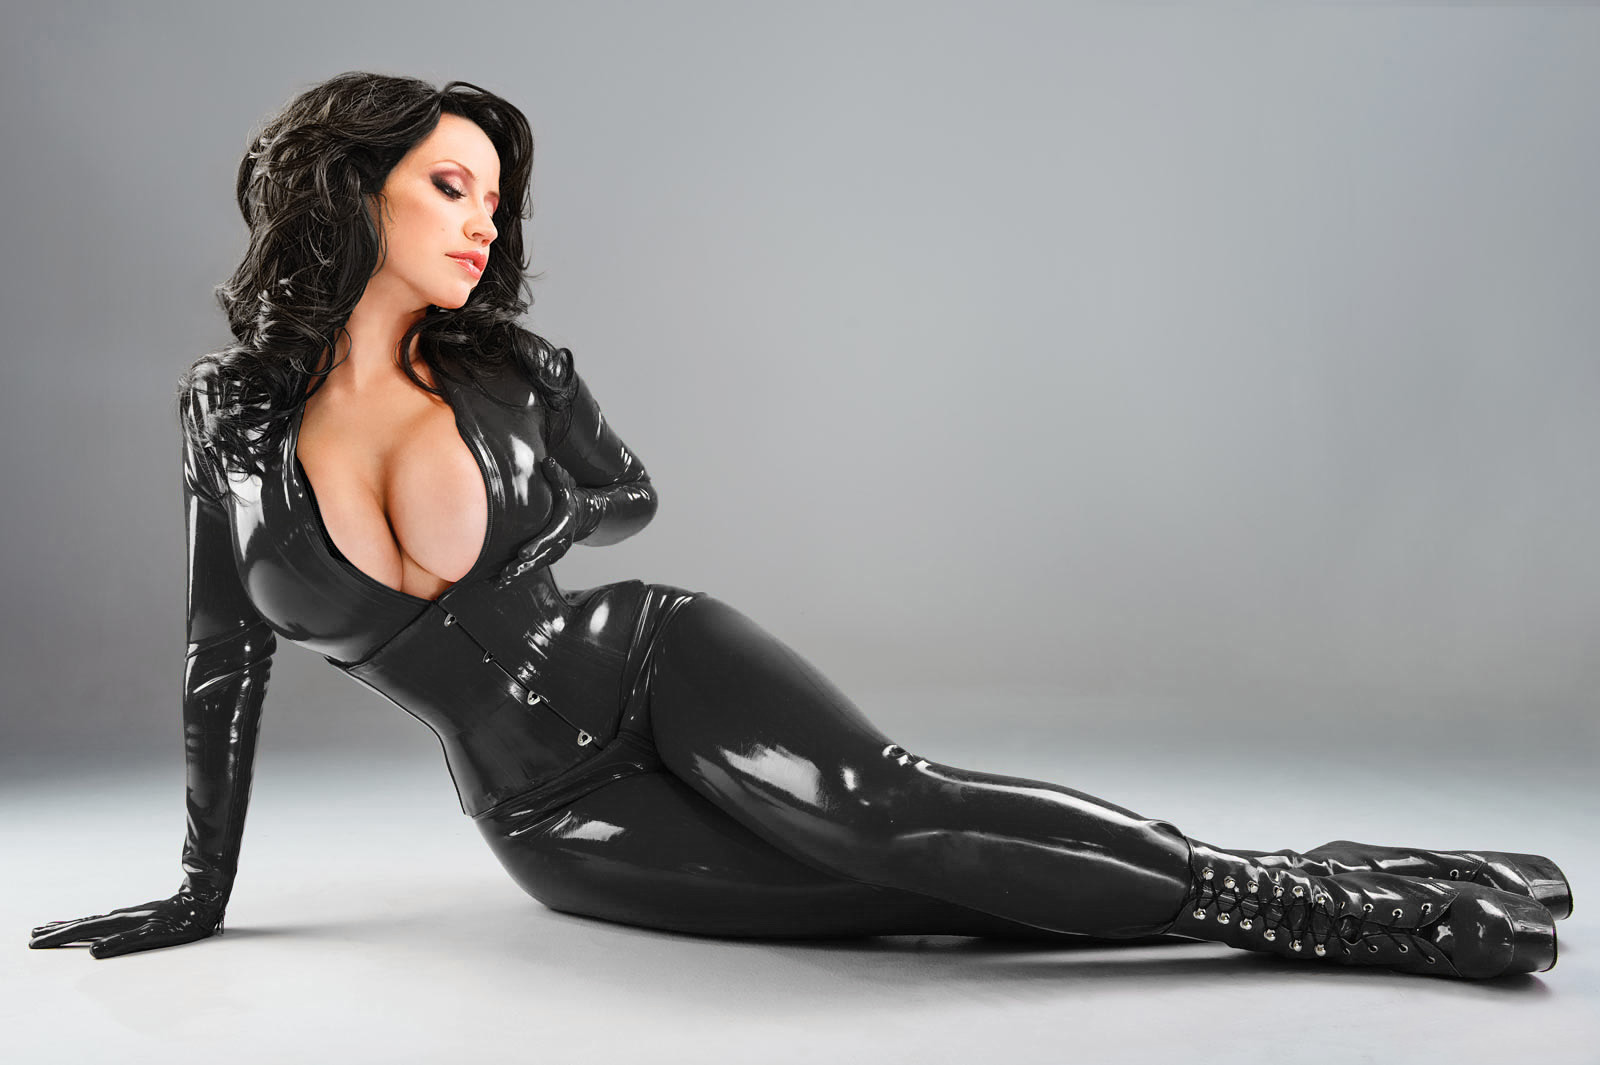 Wild babe Cindy Hope is posing in her tight latex dress on camera № 679740 без смс